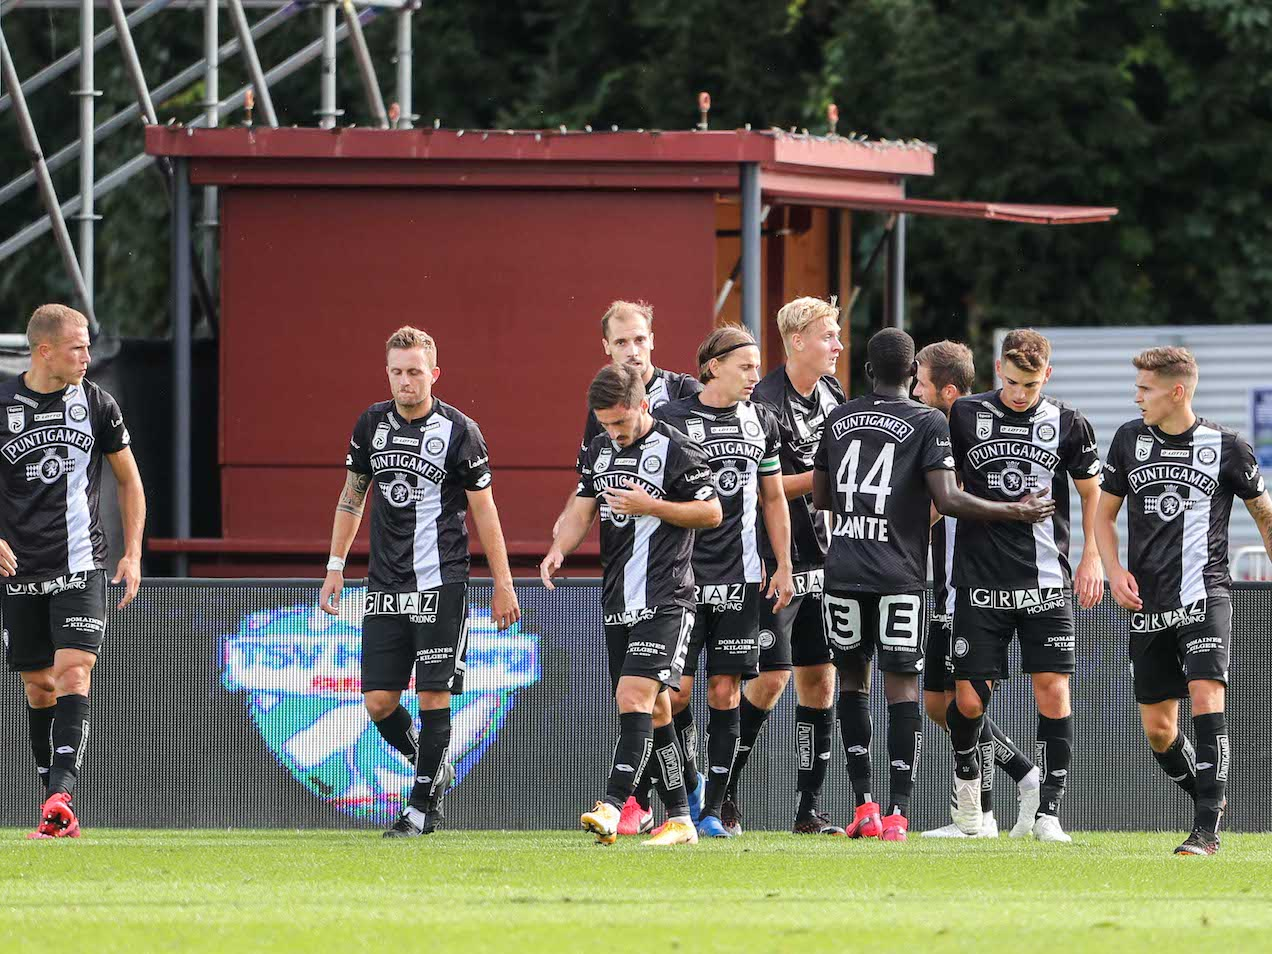 SturmGraz JubelTeam RichardPurgstaller